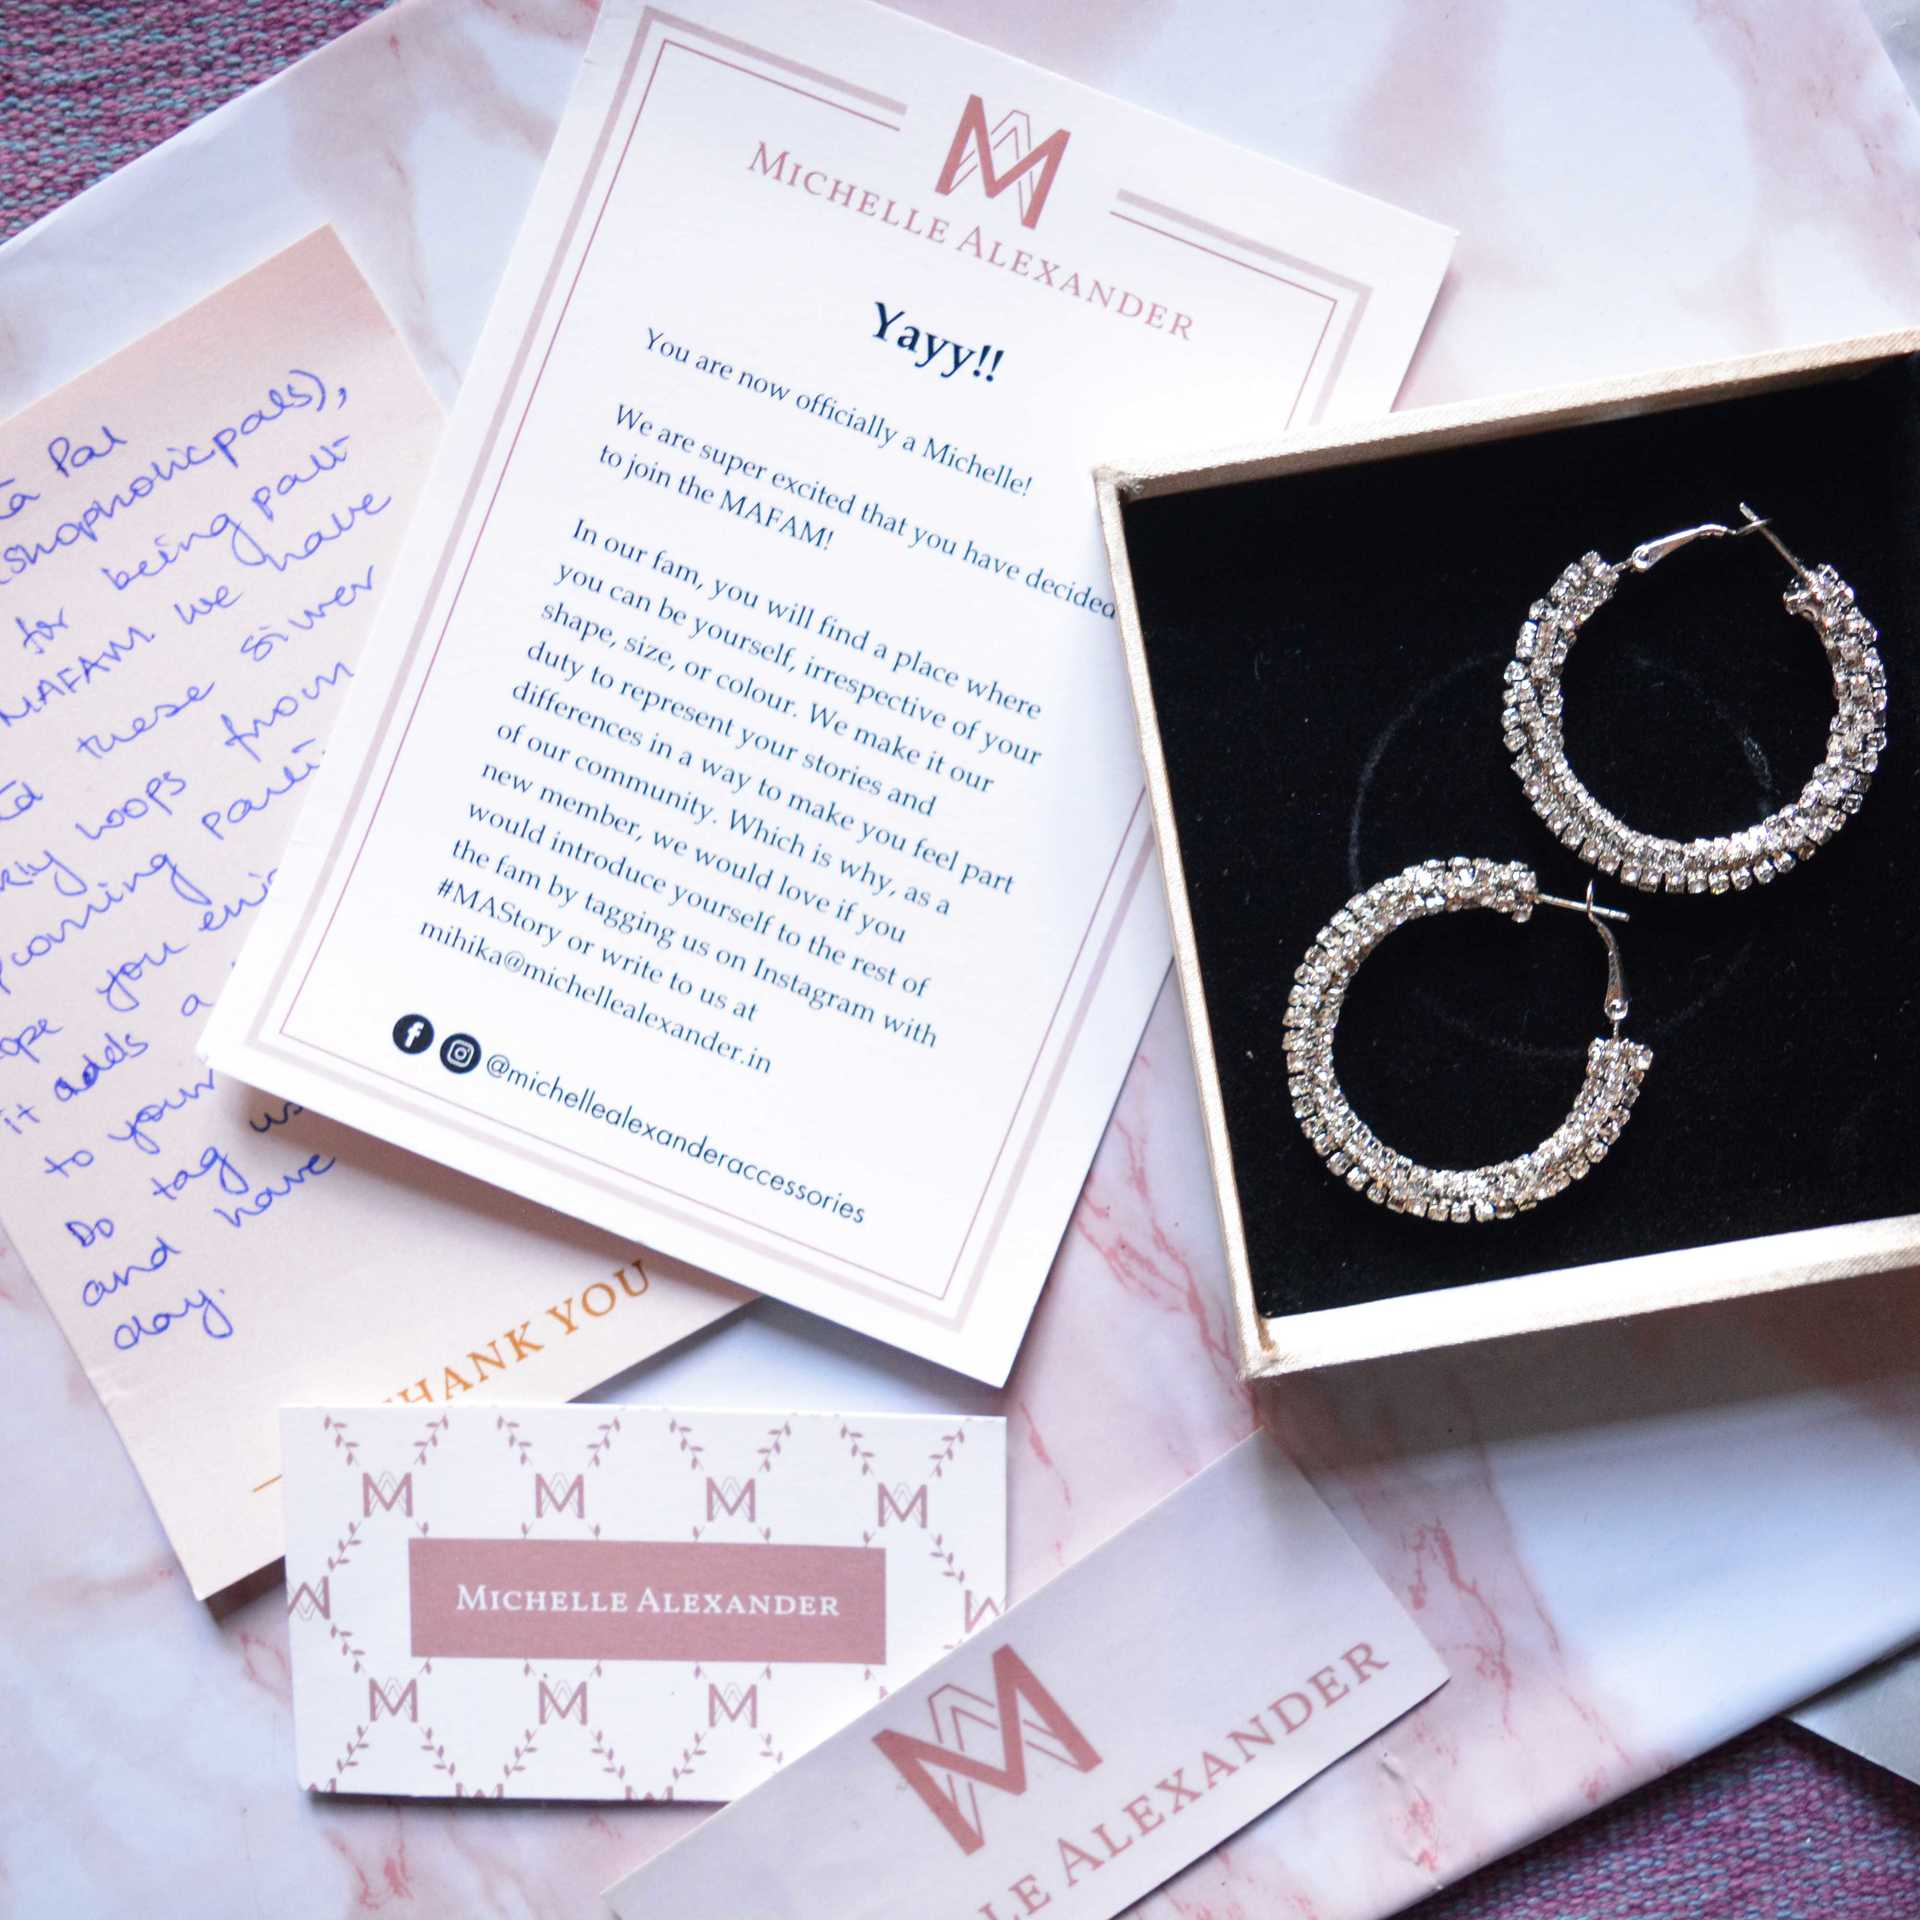 Michelle Alexander Jewellery Unboxing + Review! image